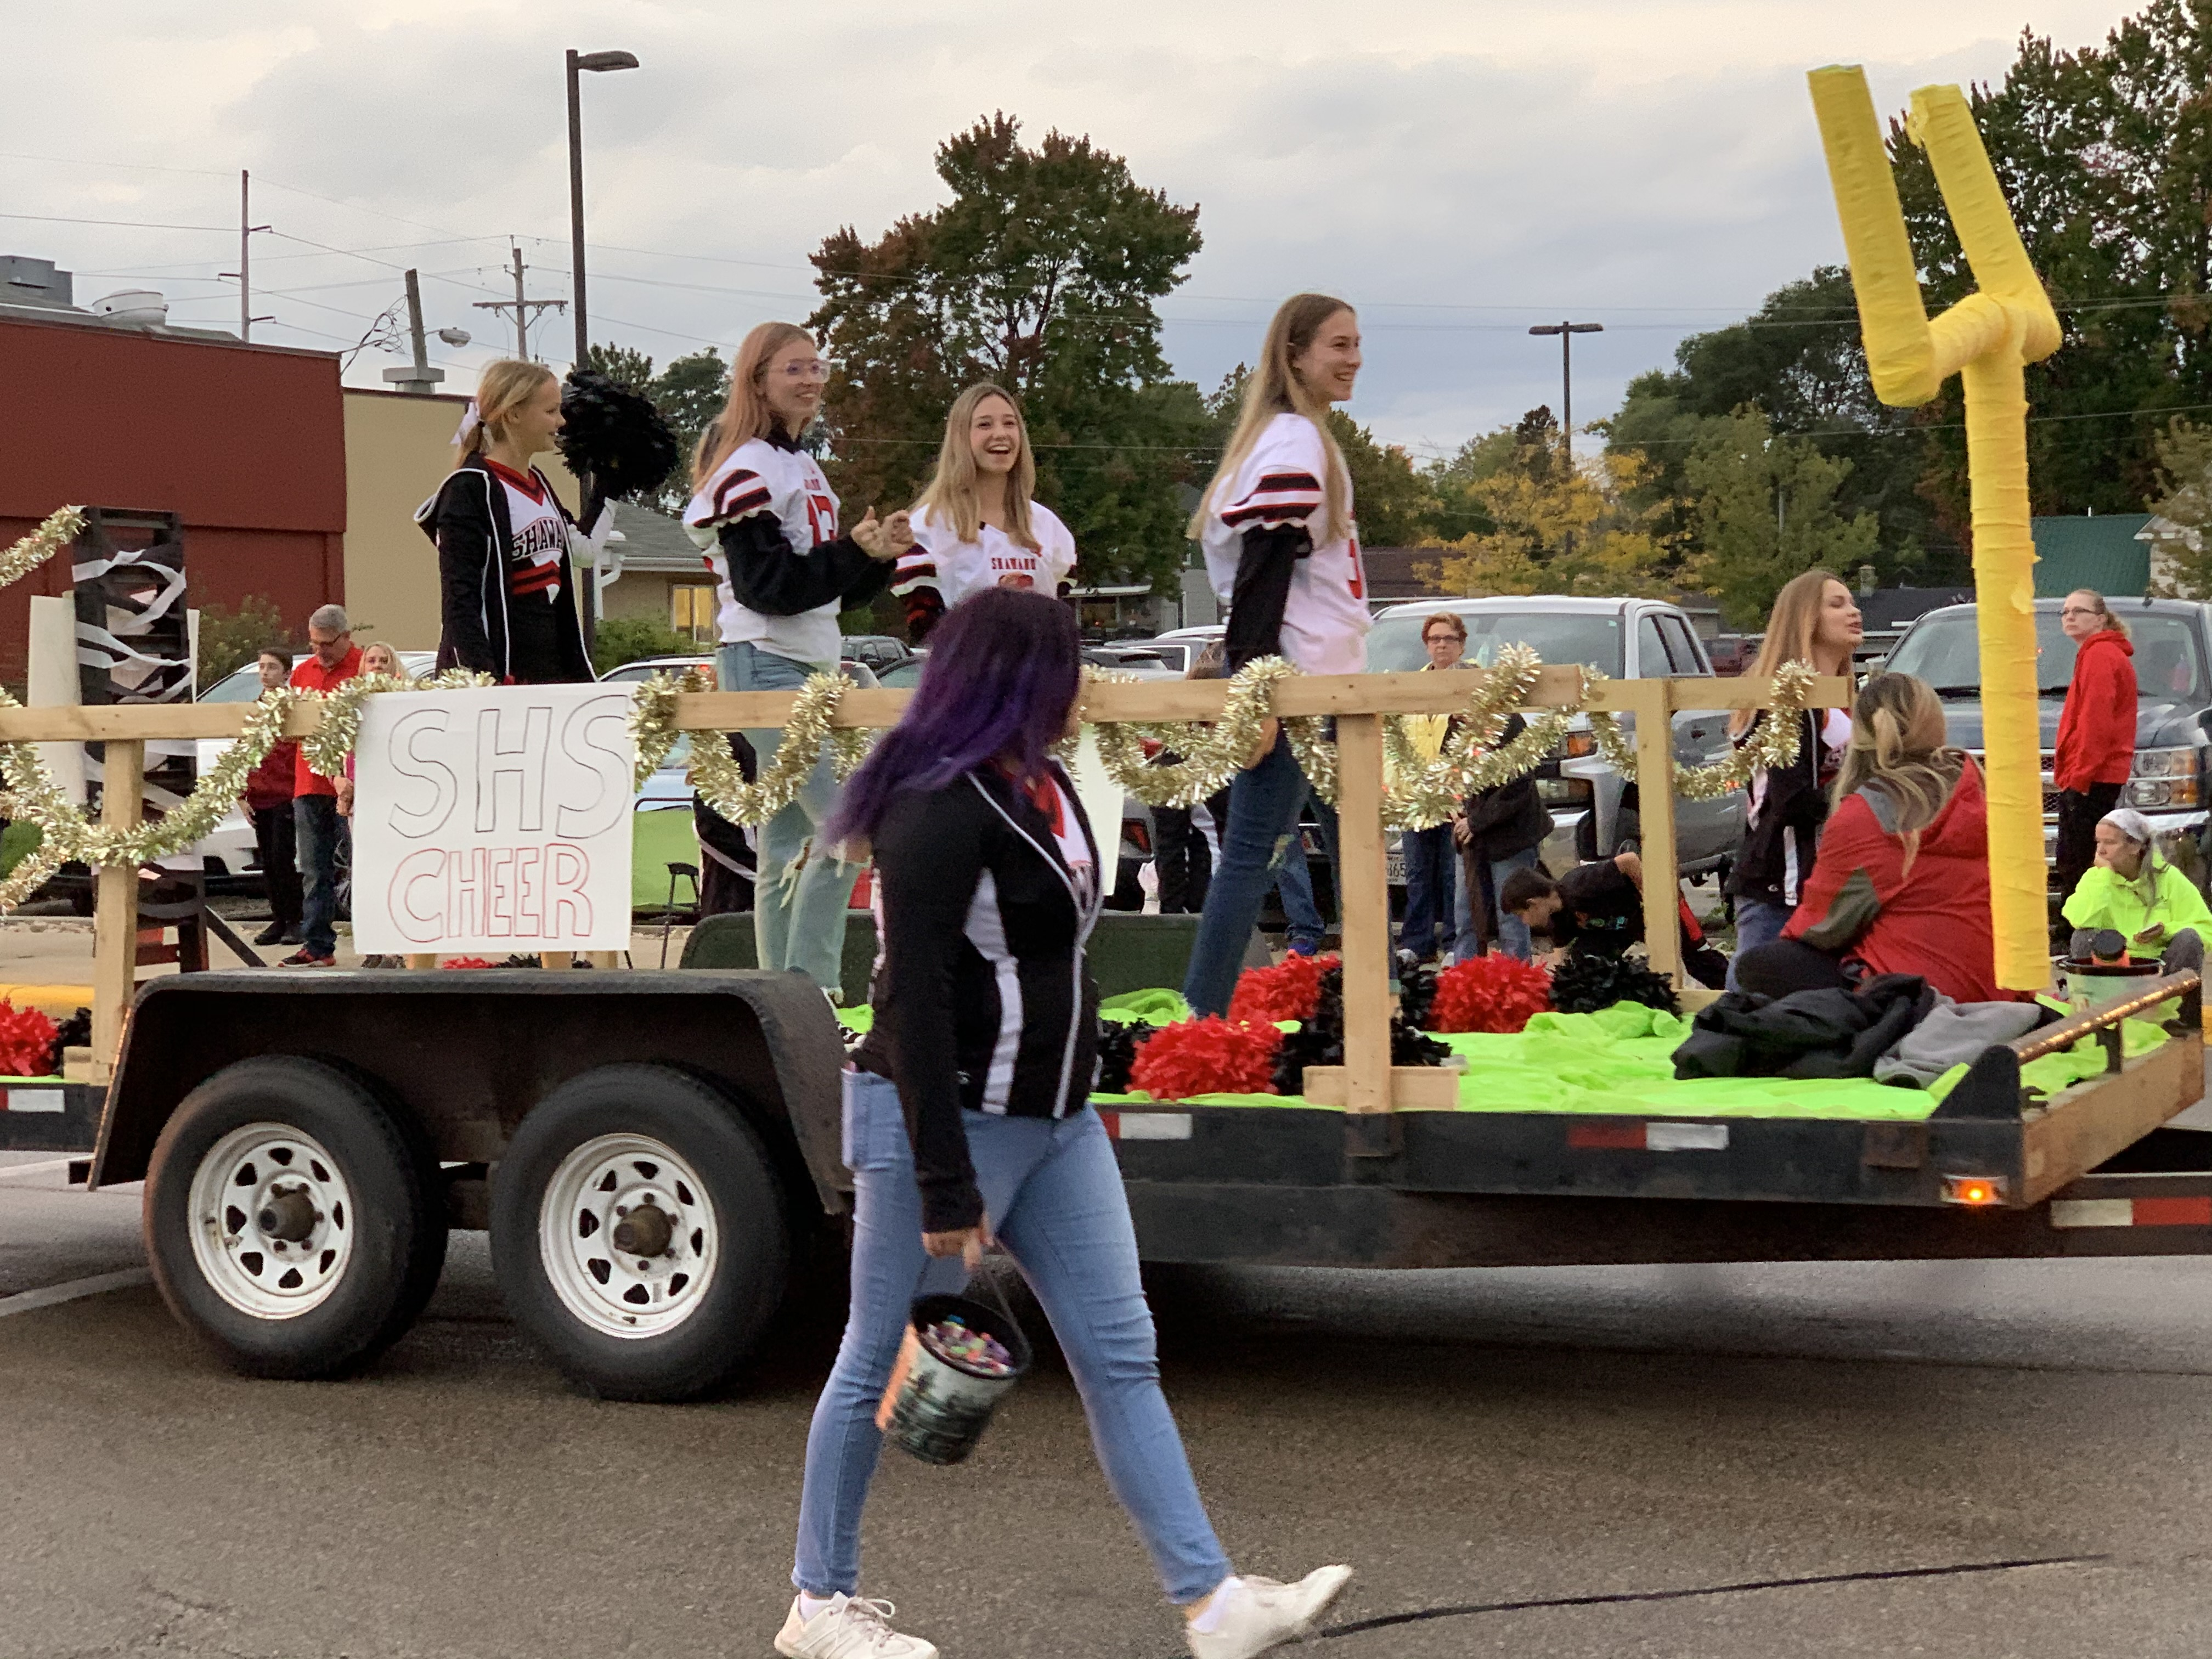 The Shawano cheer squad marches down Main Street in a football field-themed float during the Sept. 24 homecoming parade.Luke Reimer   NEW Media